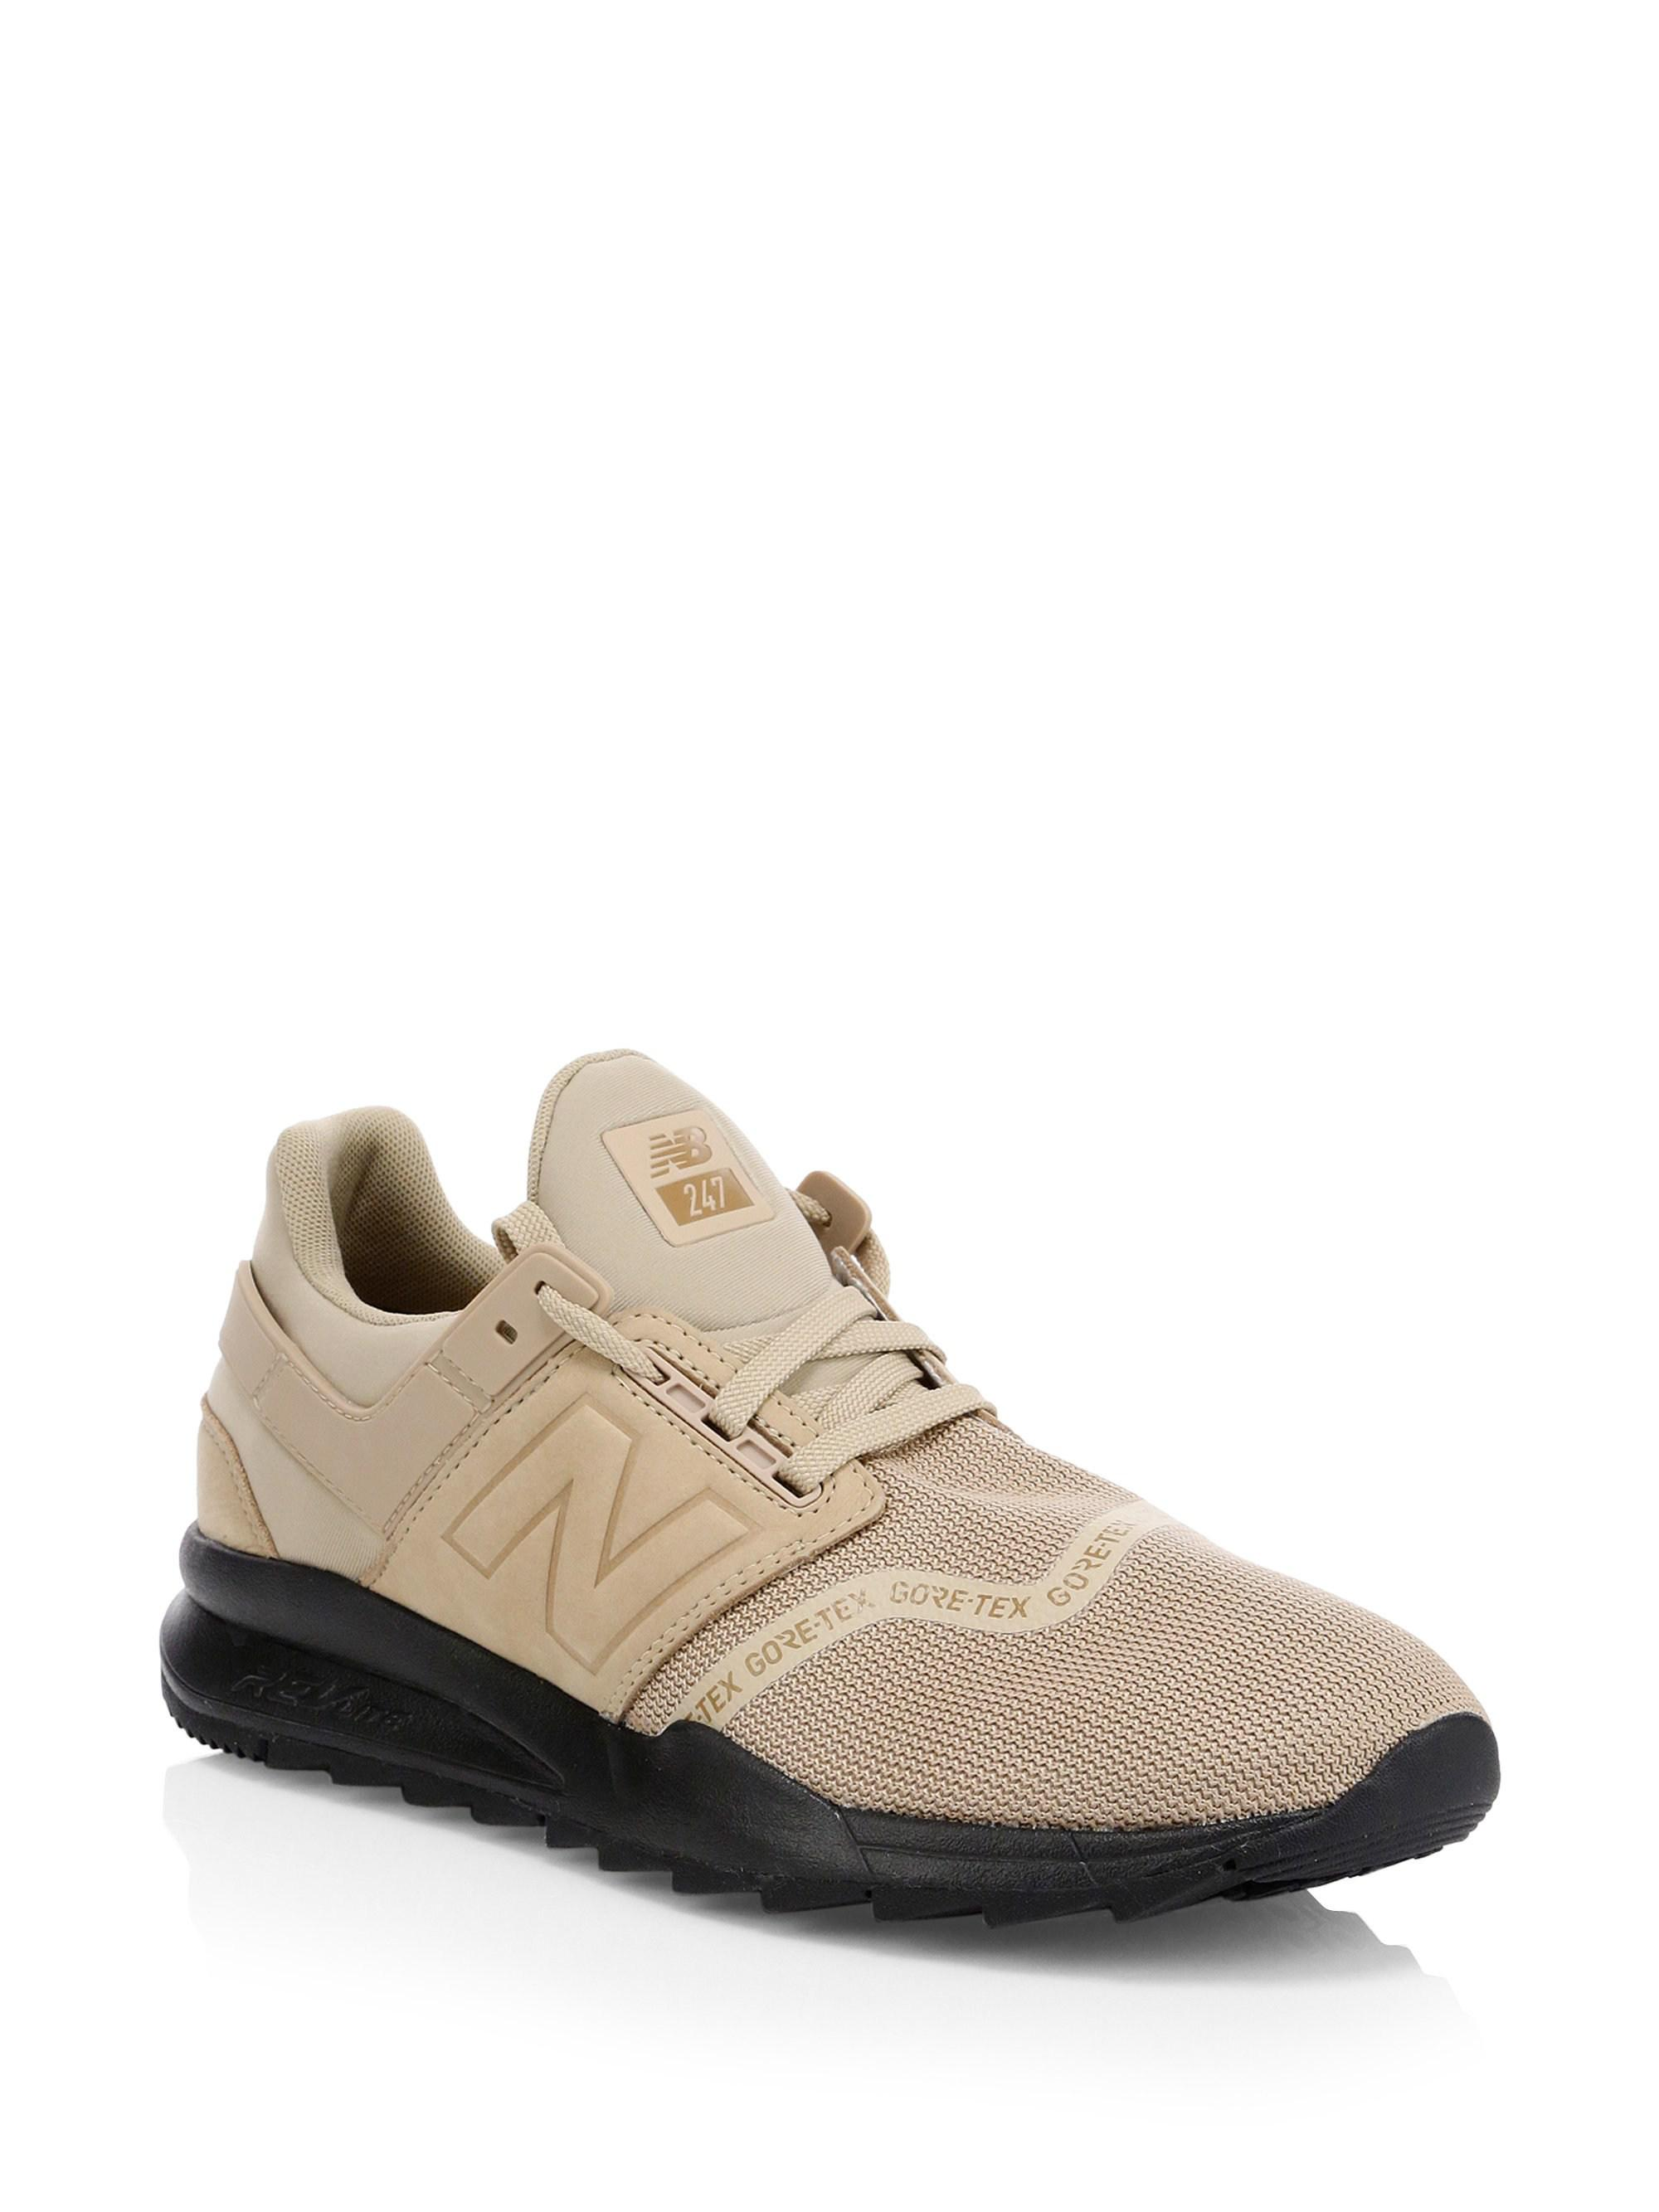 945fc14e2ffa4 New Balance 247 Gore-tex Sneakers in Natural for Men - Lyst